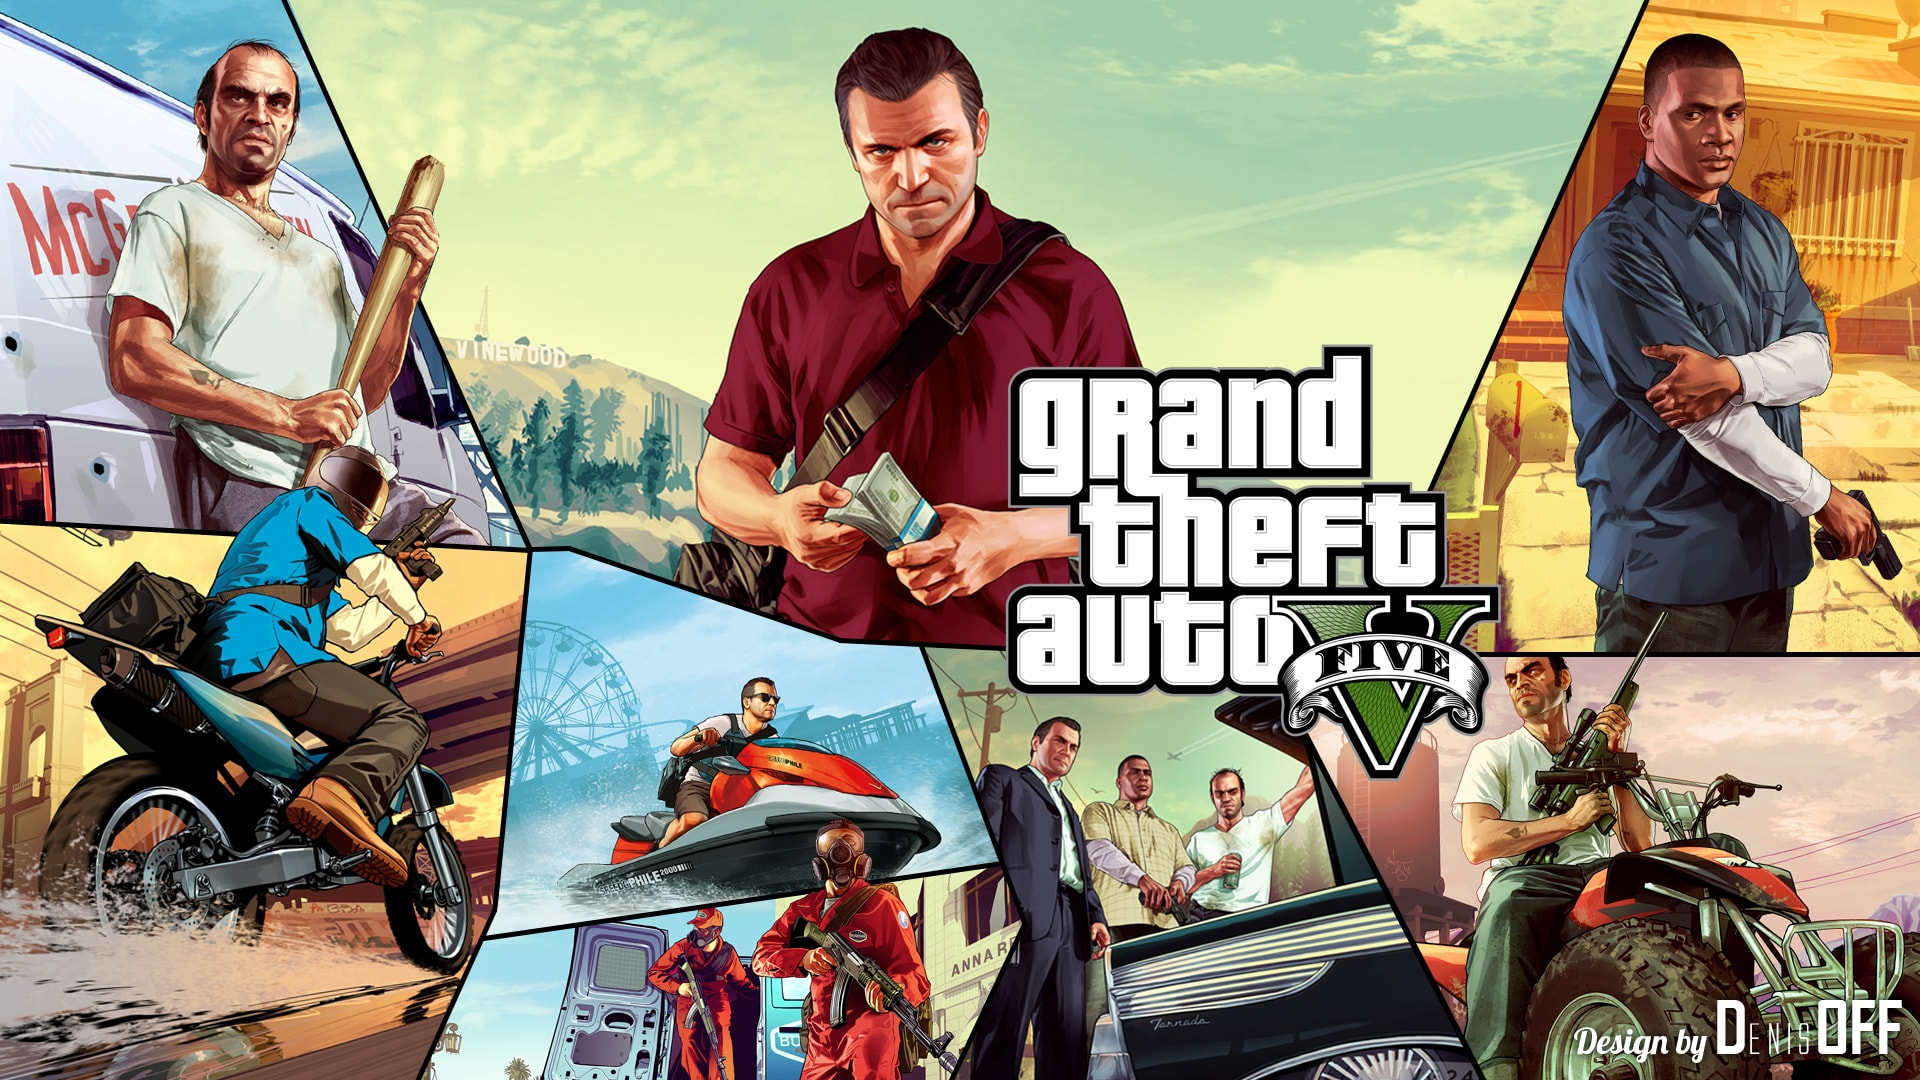 25 gta 5 hd wallpapers mytechshout - Gta v wallpaper ...